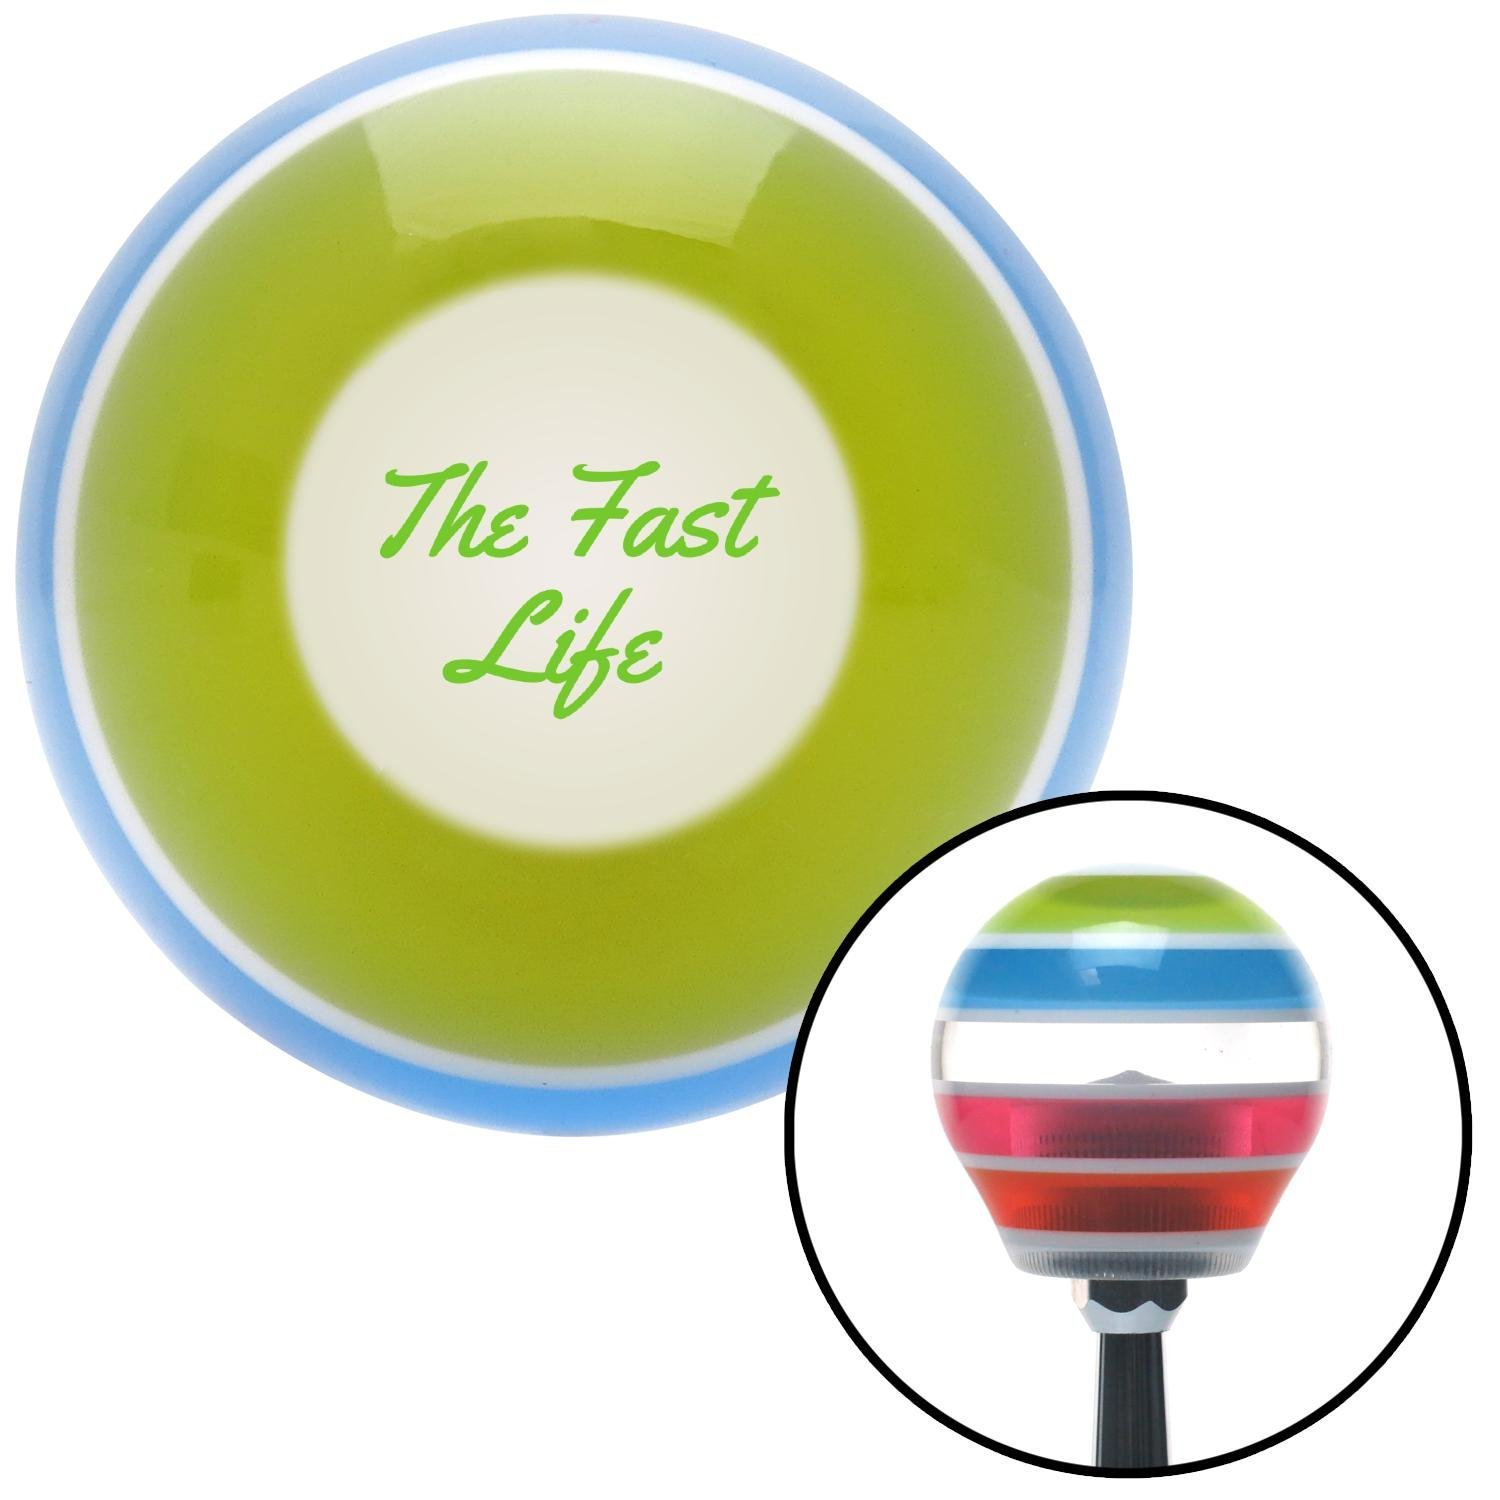 American Shifter 272674 Green The Fast Life Stripe Shift Knob with M16 x 1.5 Insert